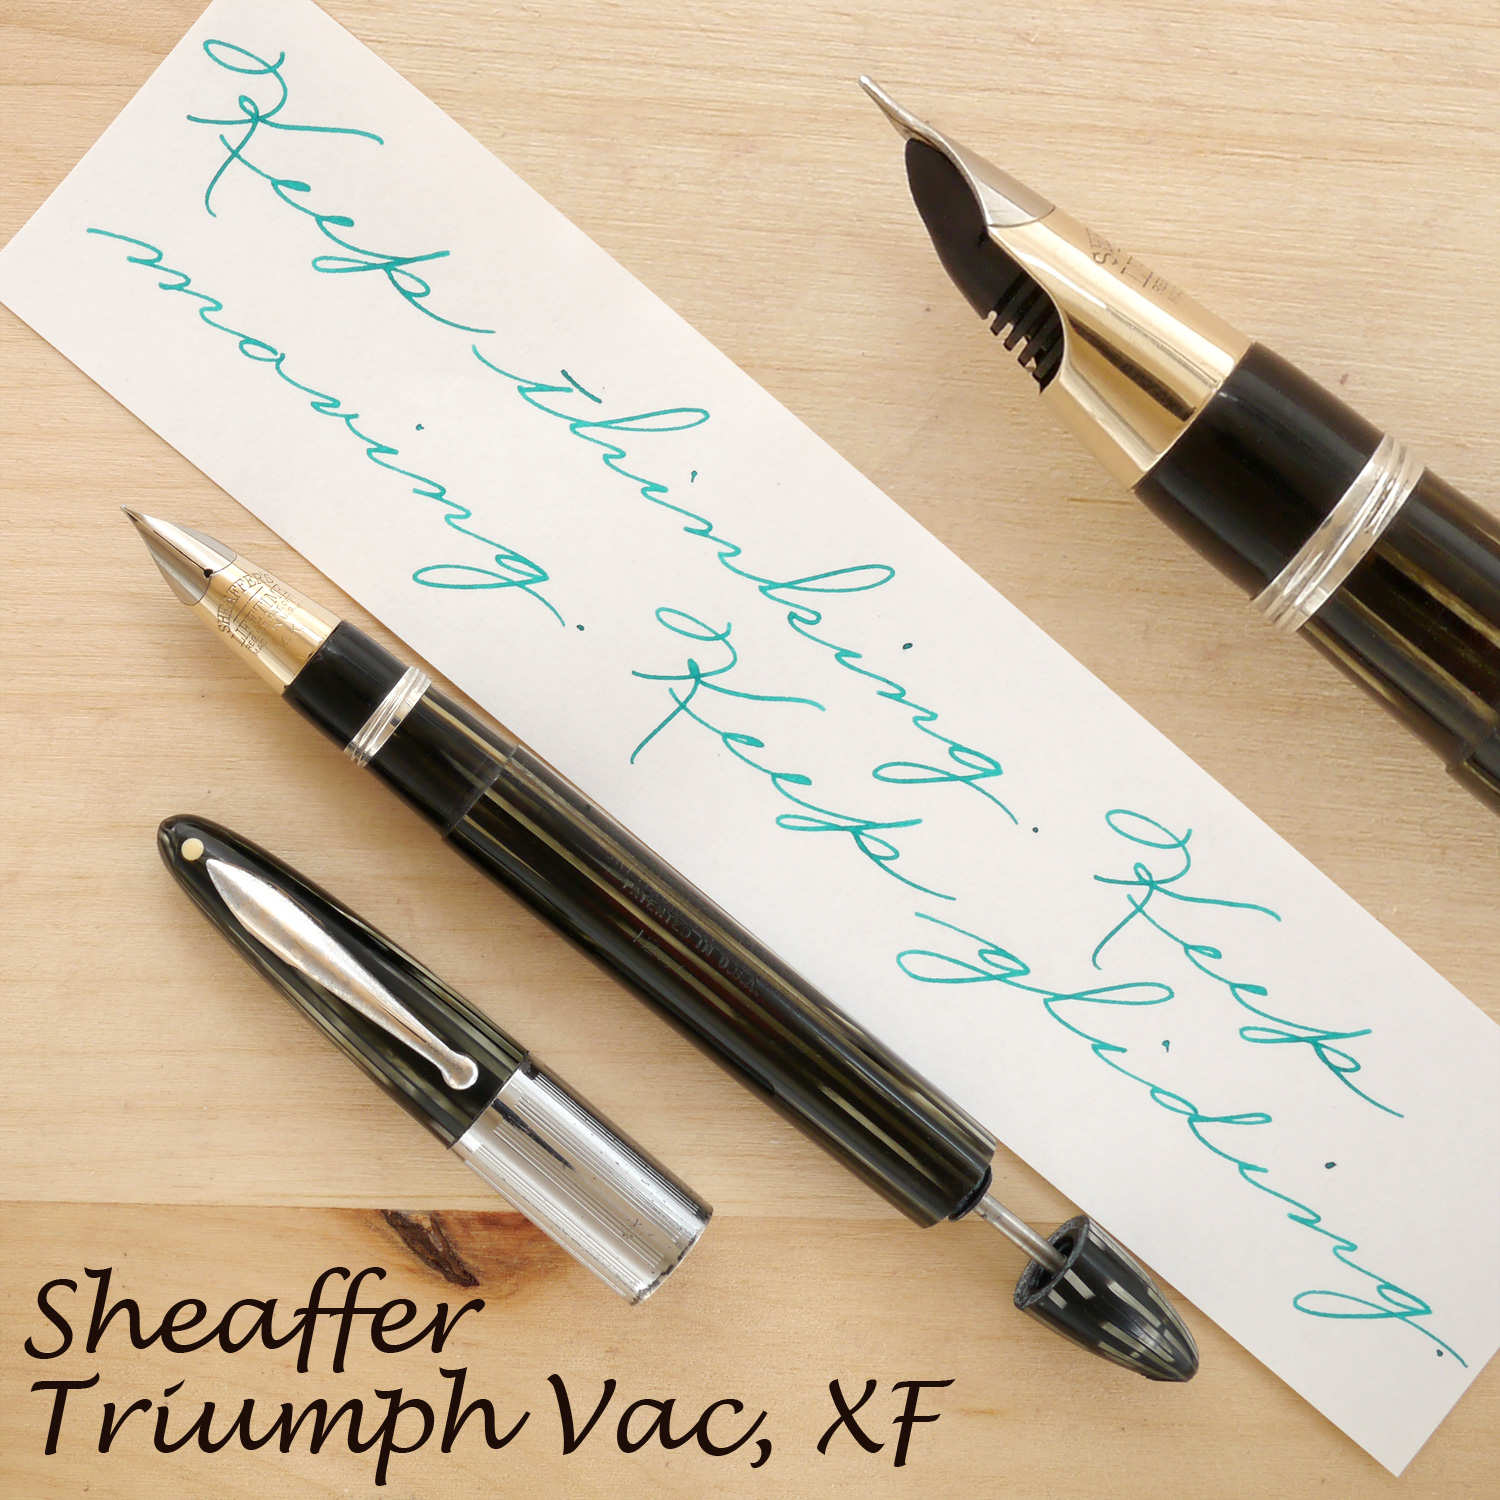 Sheaffer Triumph Vac, Gray Pearl, XF, uncapped, with the plunger rod partially extended